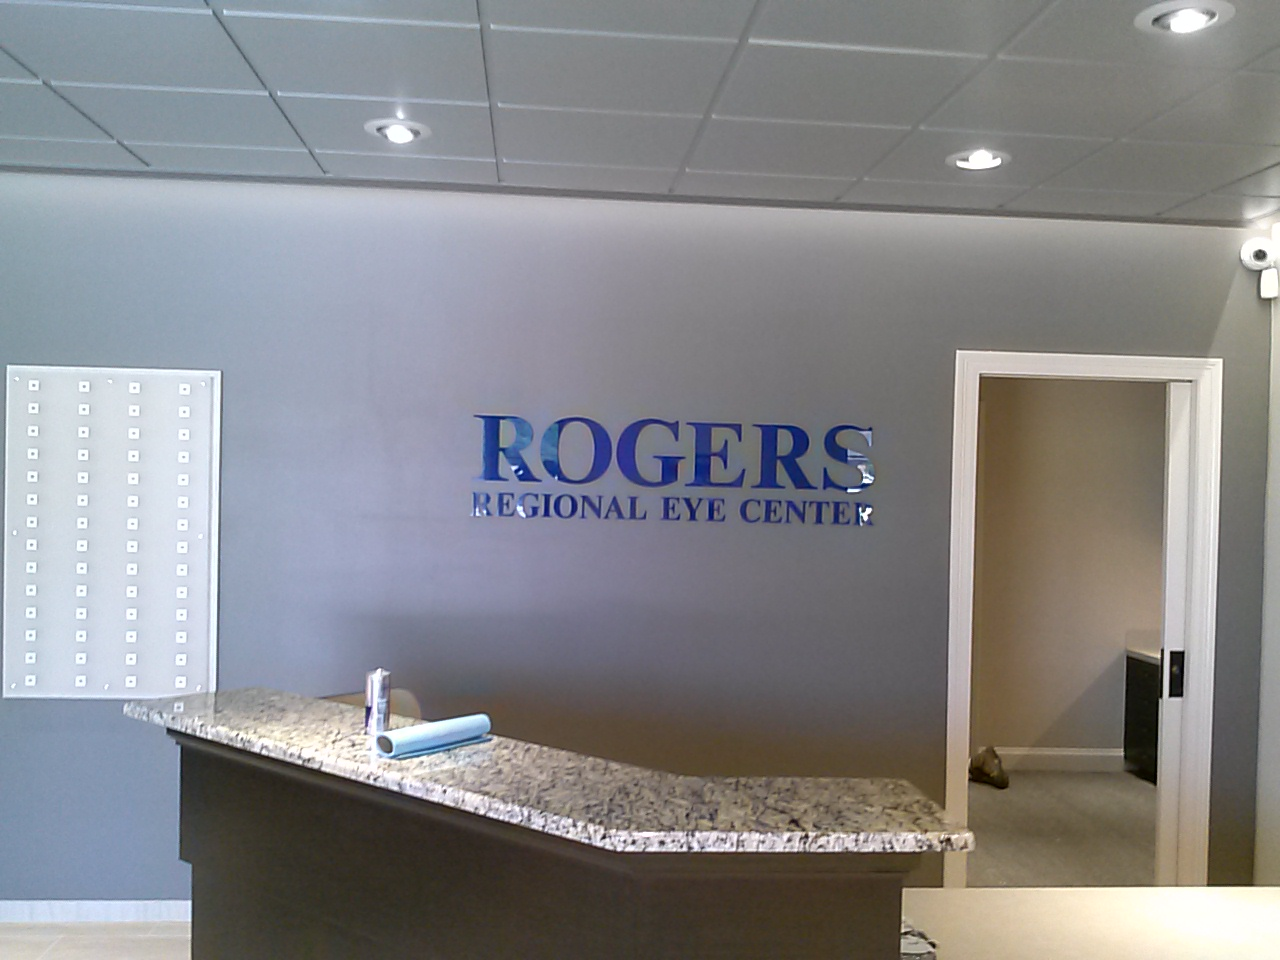 Rogers Regional Eye Center Nonlit - Letters Sign